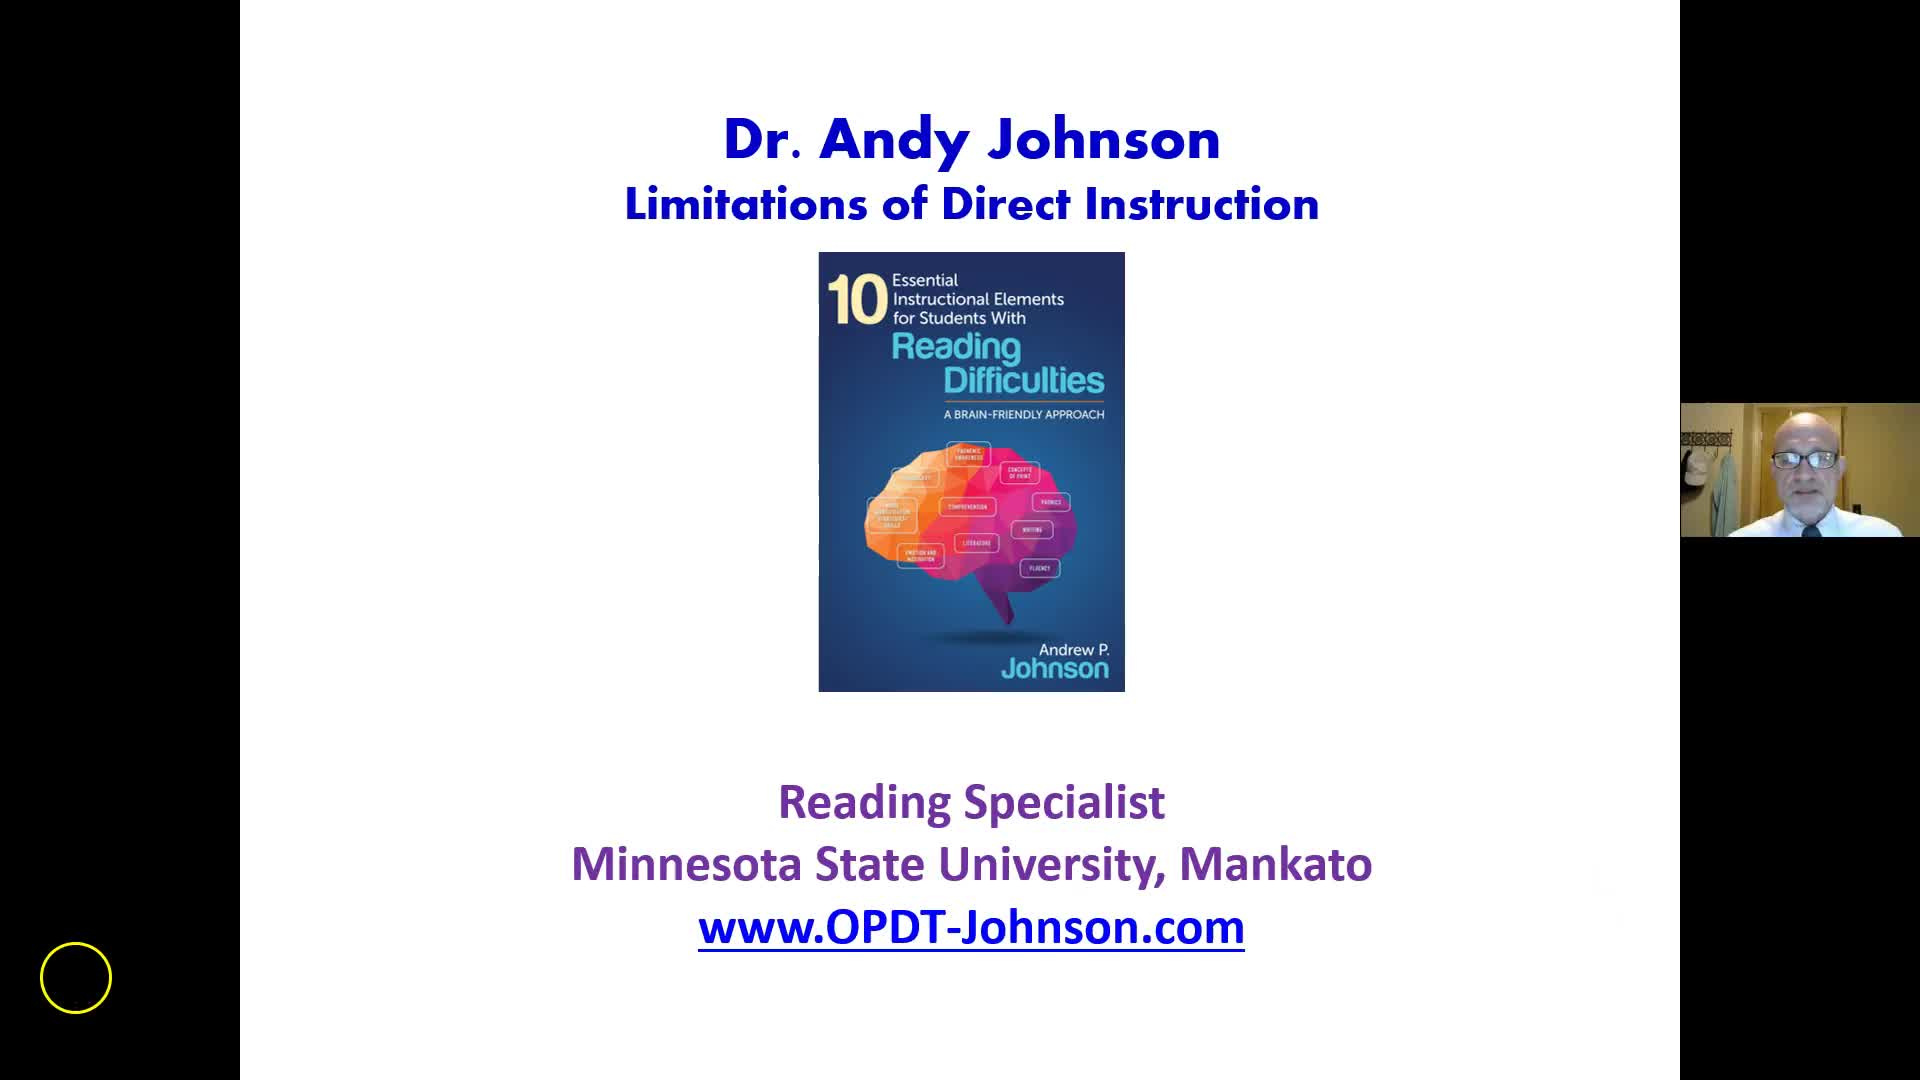 Limitations of Direct Instruction for Teaching Reading